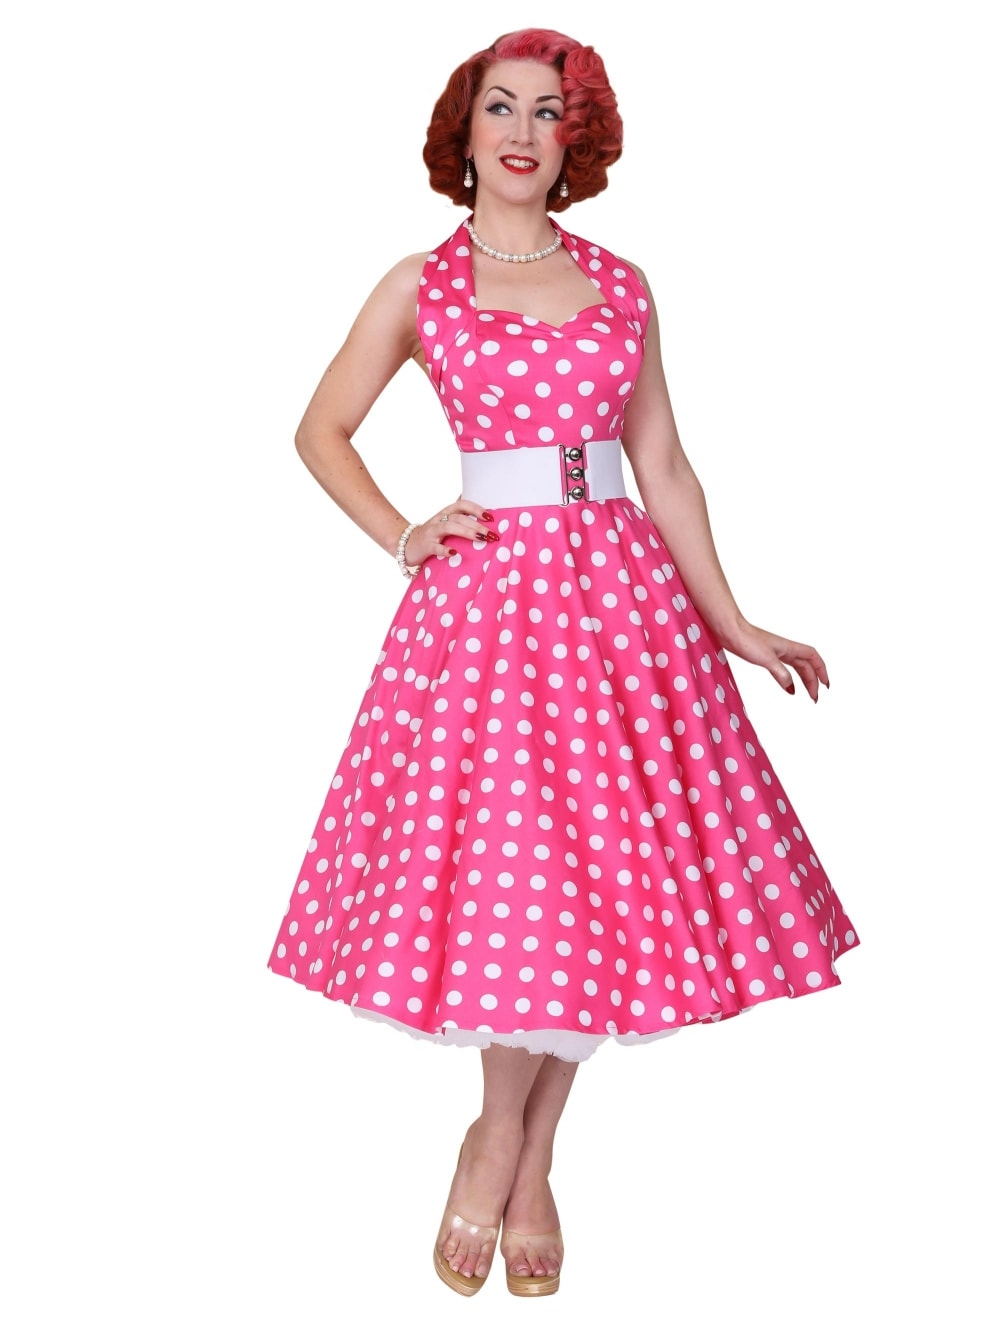 1950s Halterneck Cerise Polkadot Dress From Vivien Of Holloway